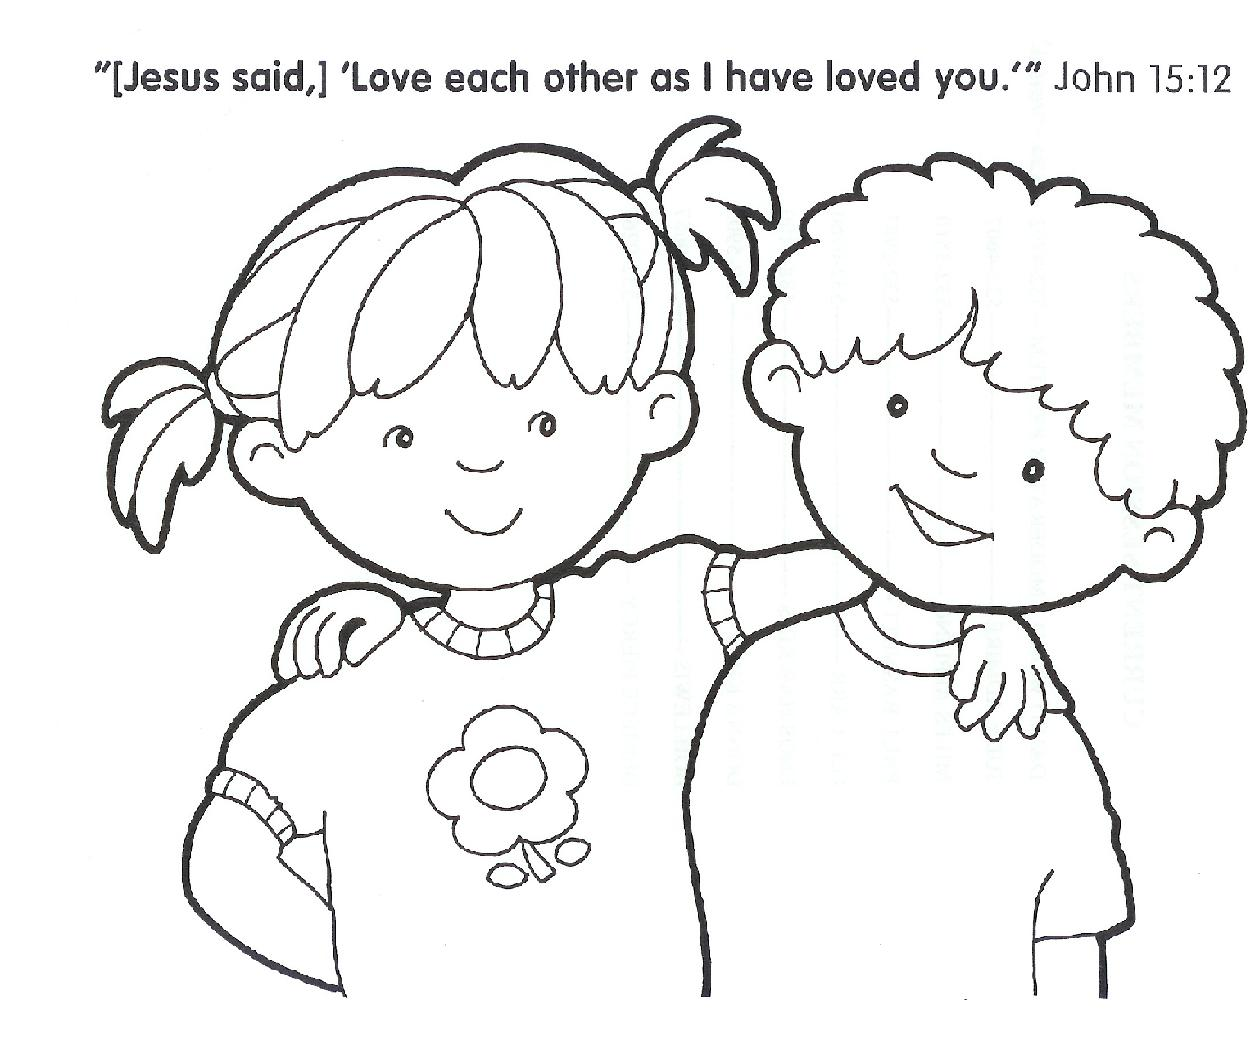 Christian Coloring Pages For Kids at GetDrawings.com | Free for ...